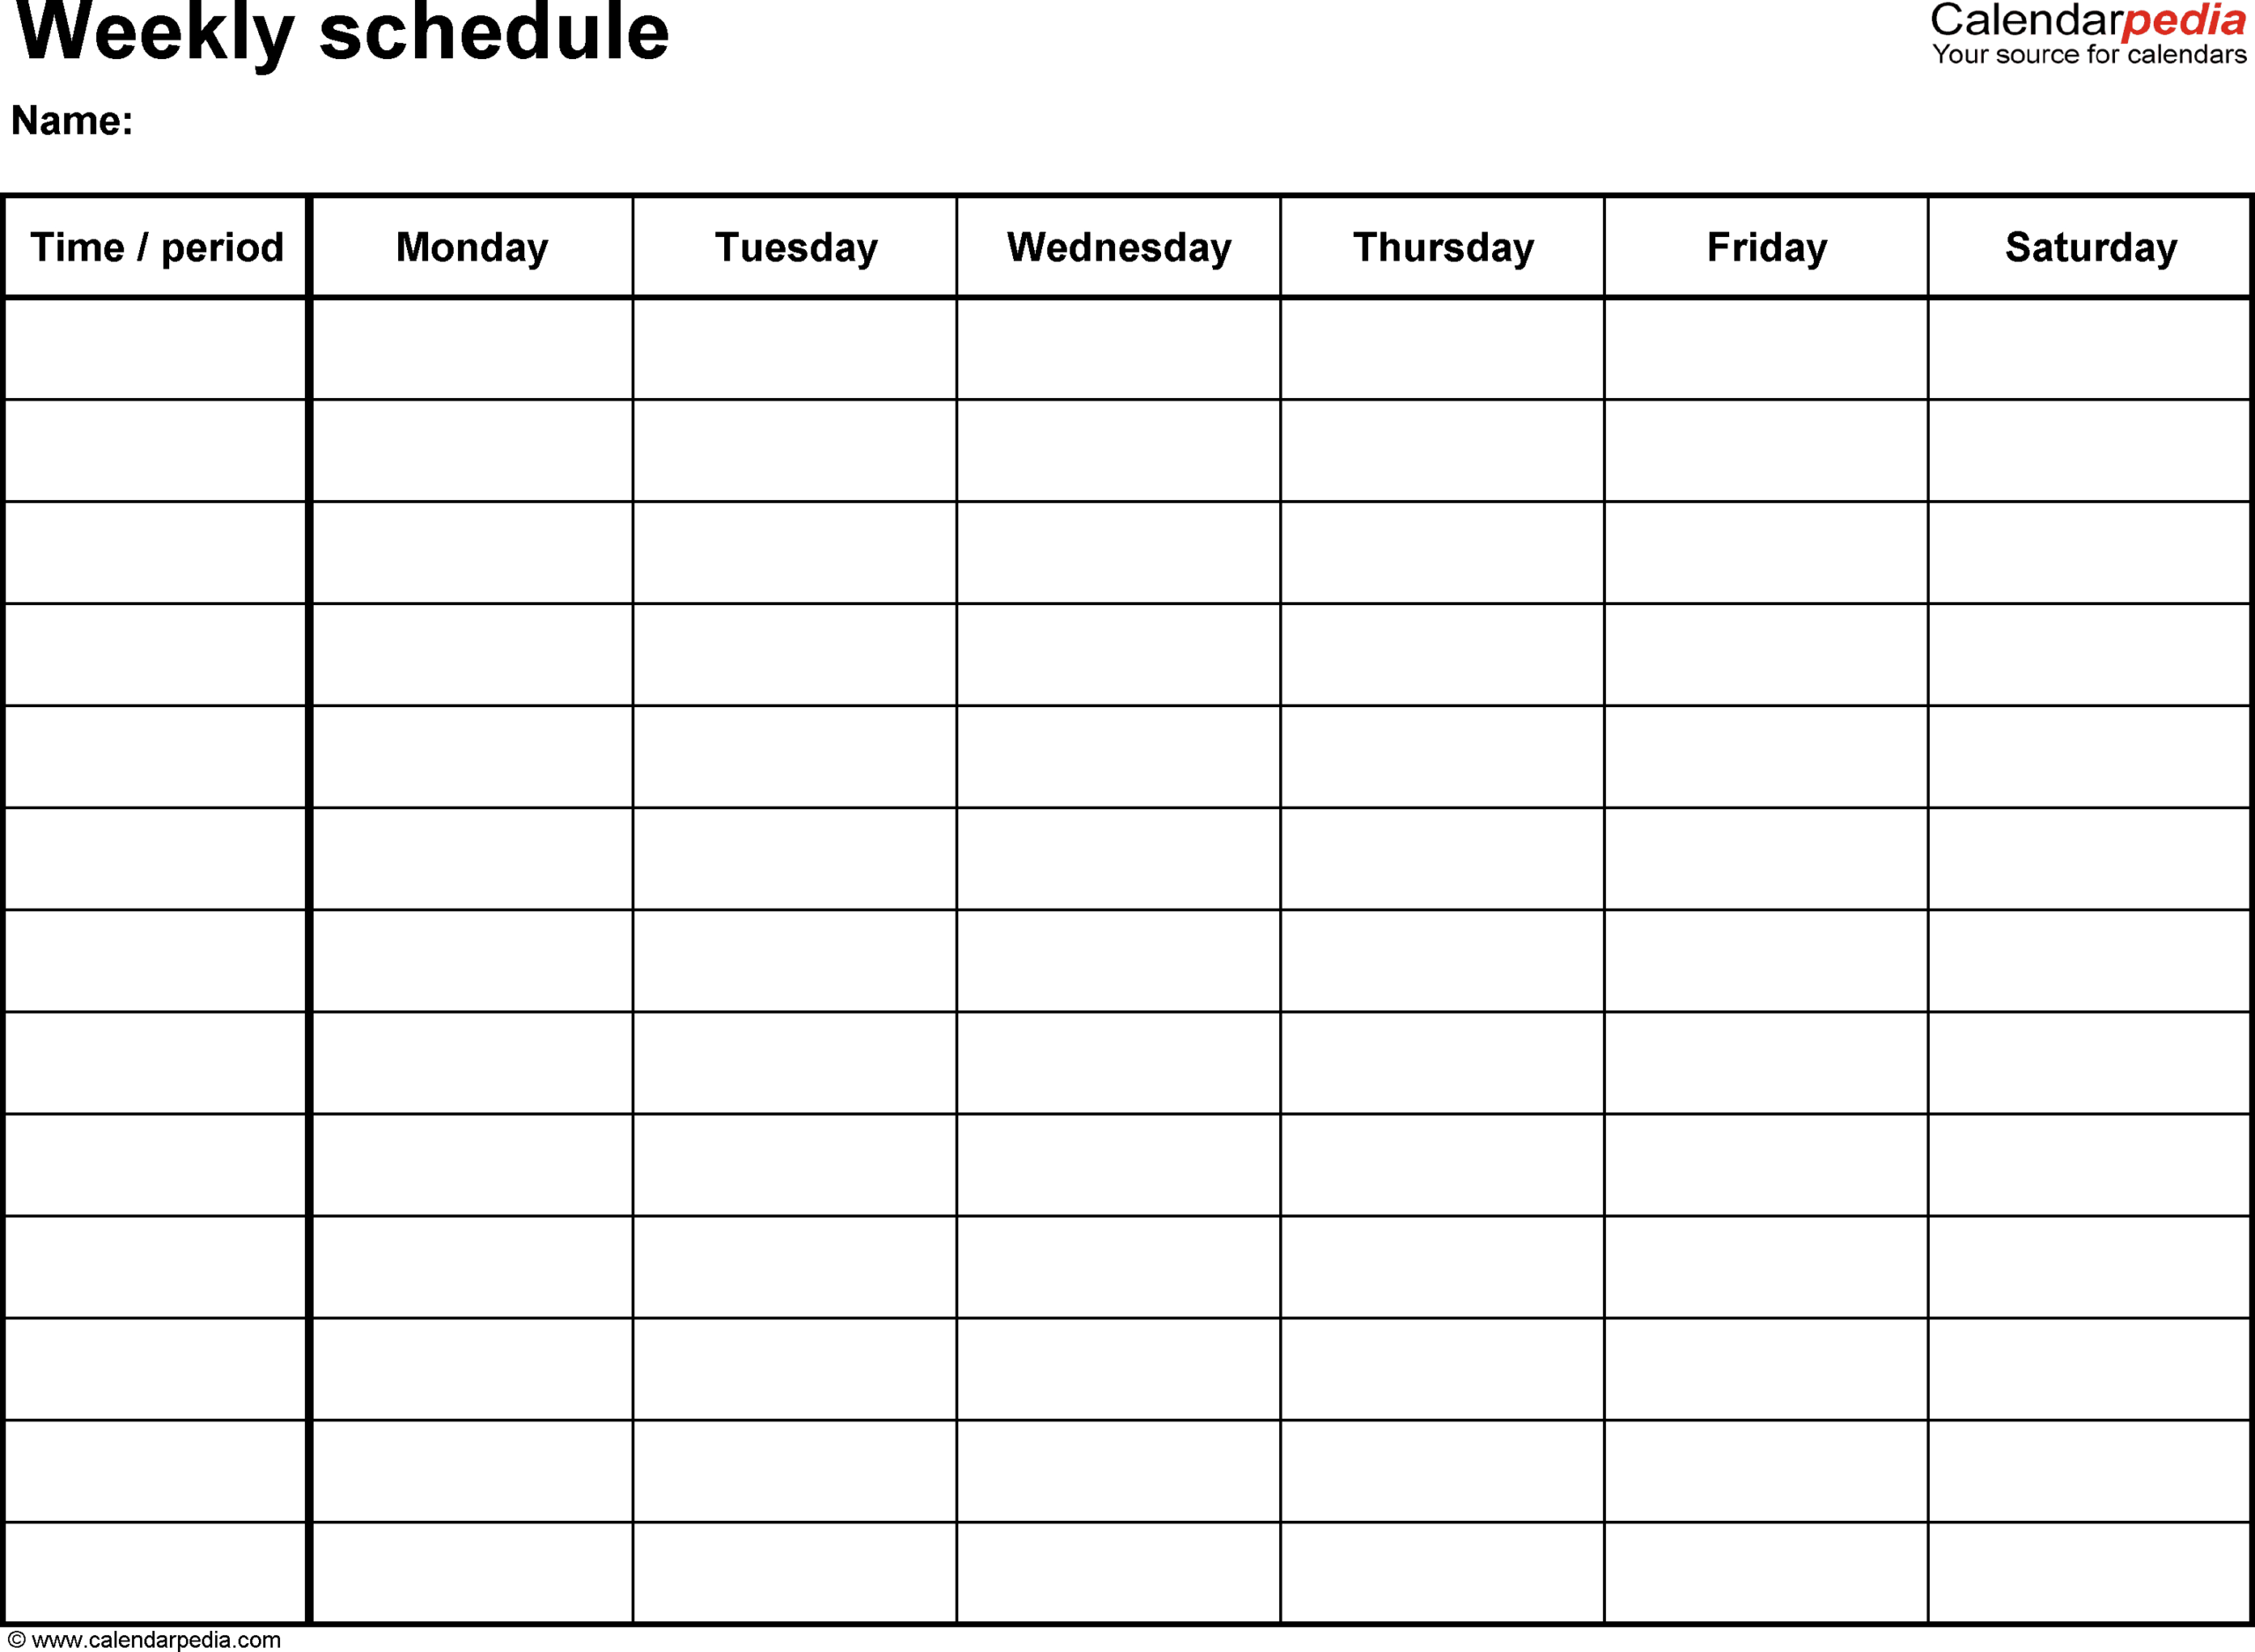 Printable Weekly Calendar Sunday Through Saturday